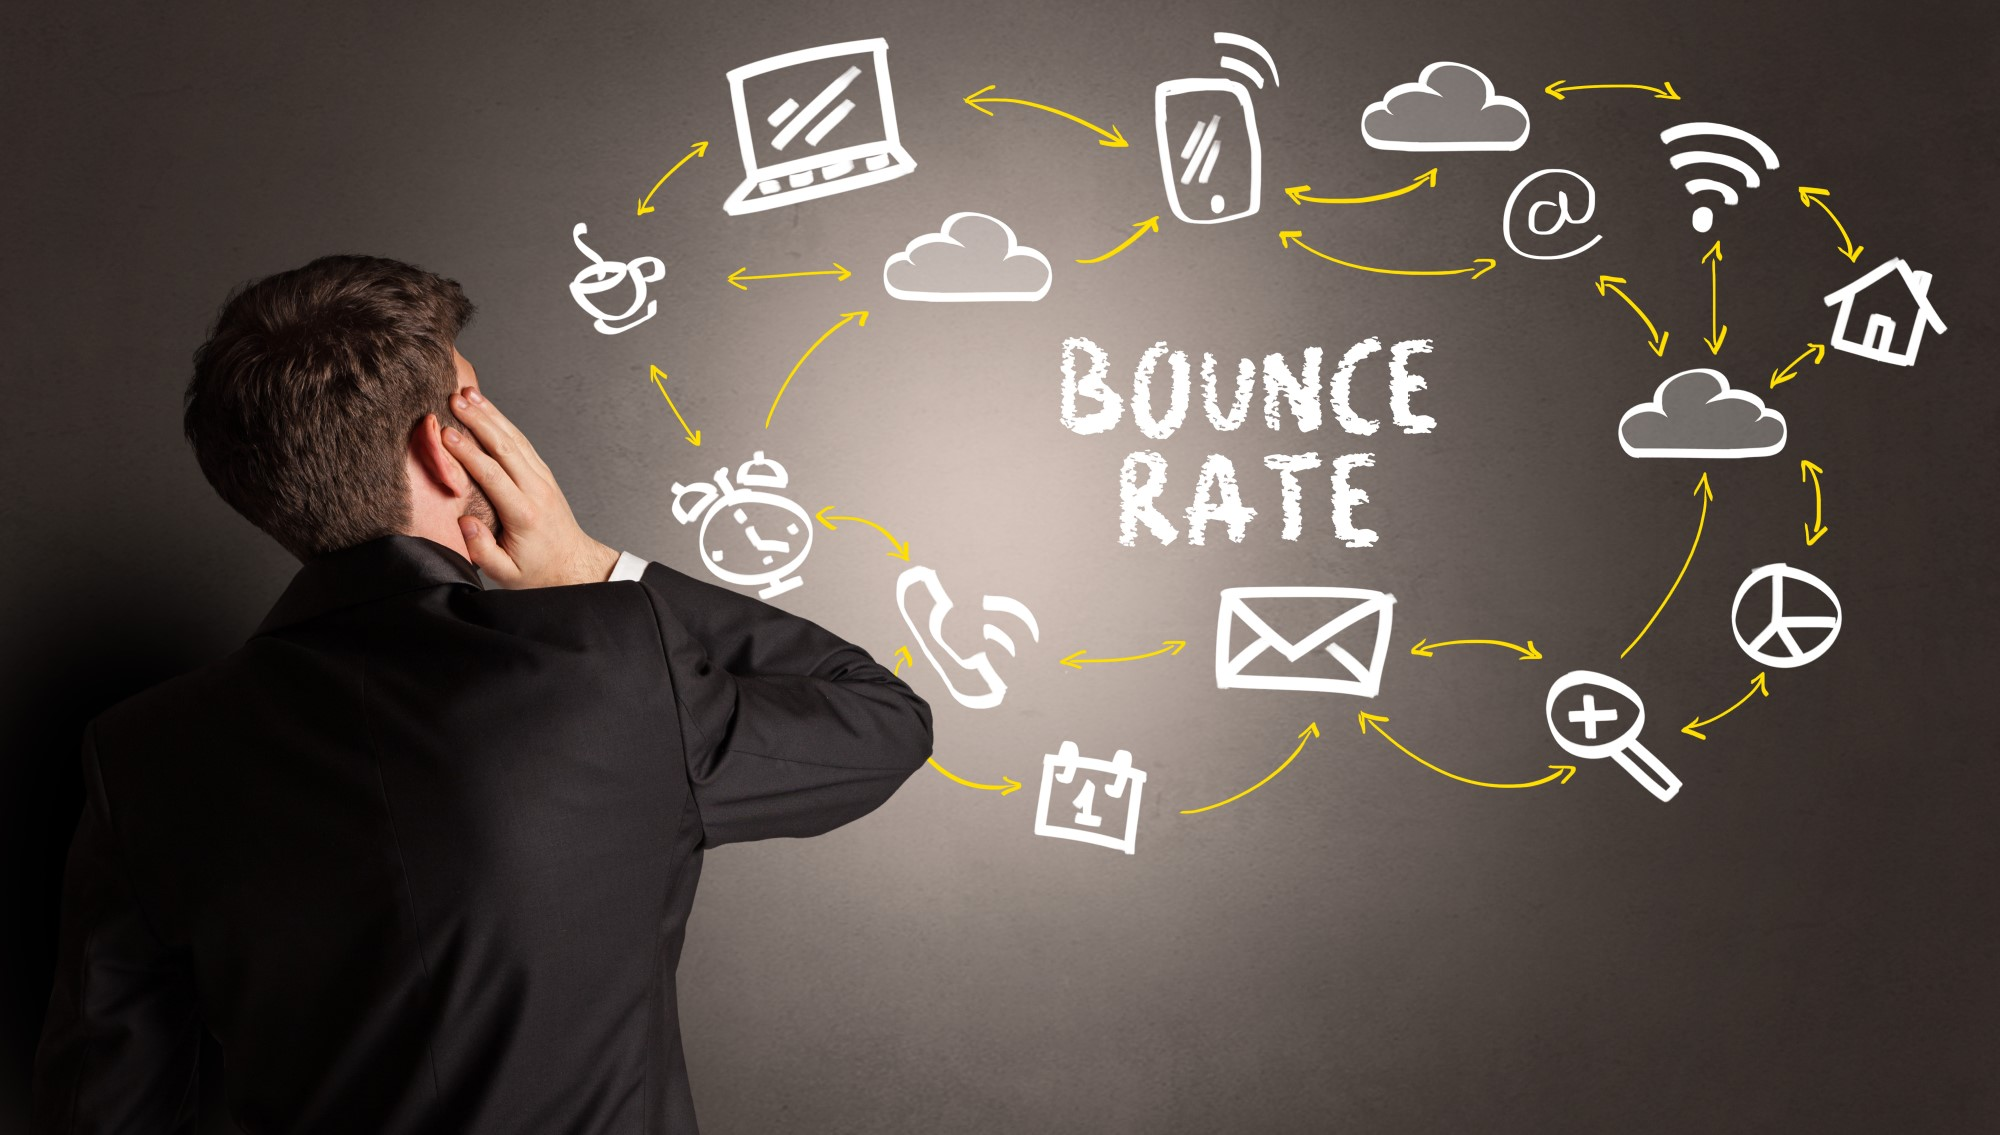 A person in a business suit confused as to what bounce rate is.